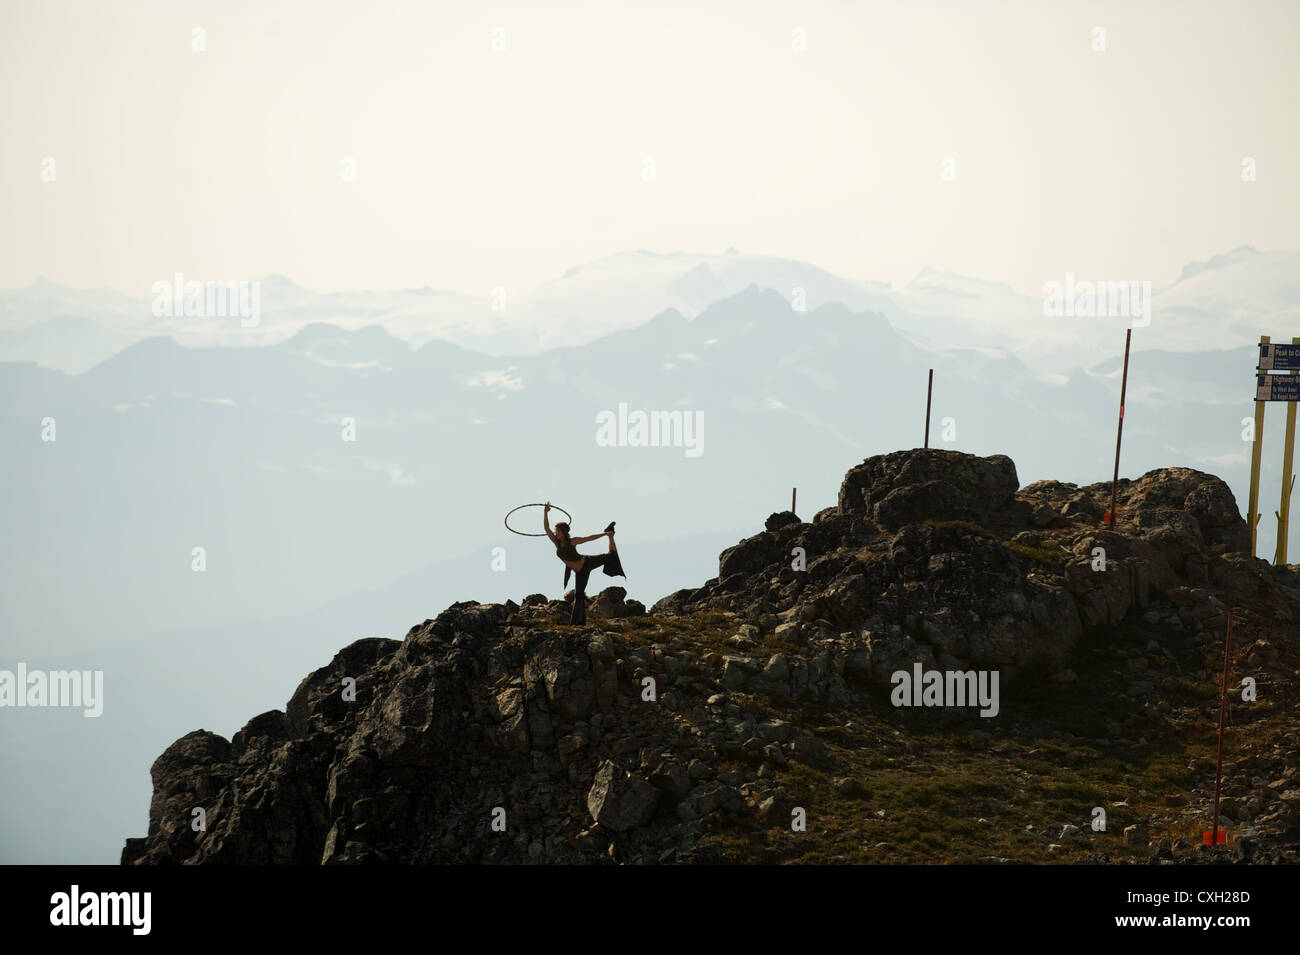 Hula Hoop artist working out at the top of Whistler Mountain.  Whistler BC, Canada - Stock Image